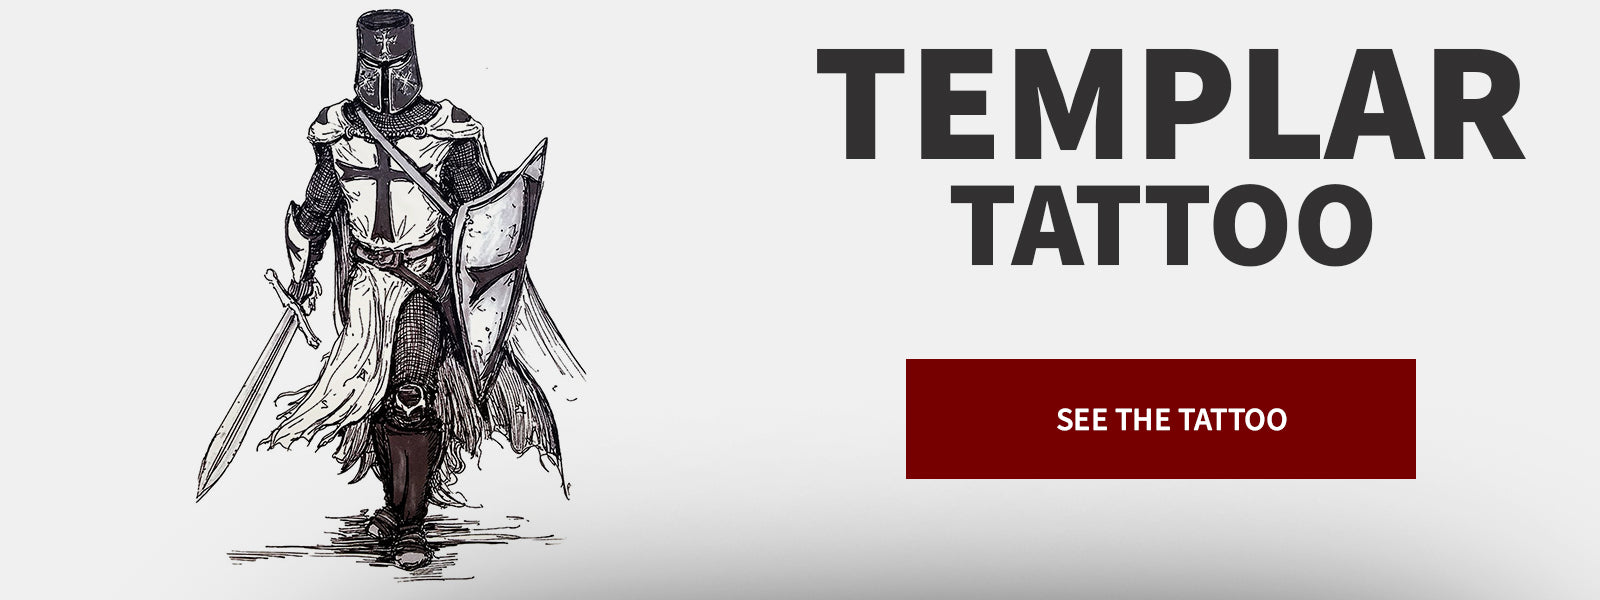 Temporary Tattoo Knight Templar